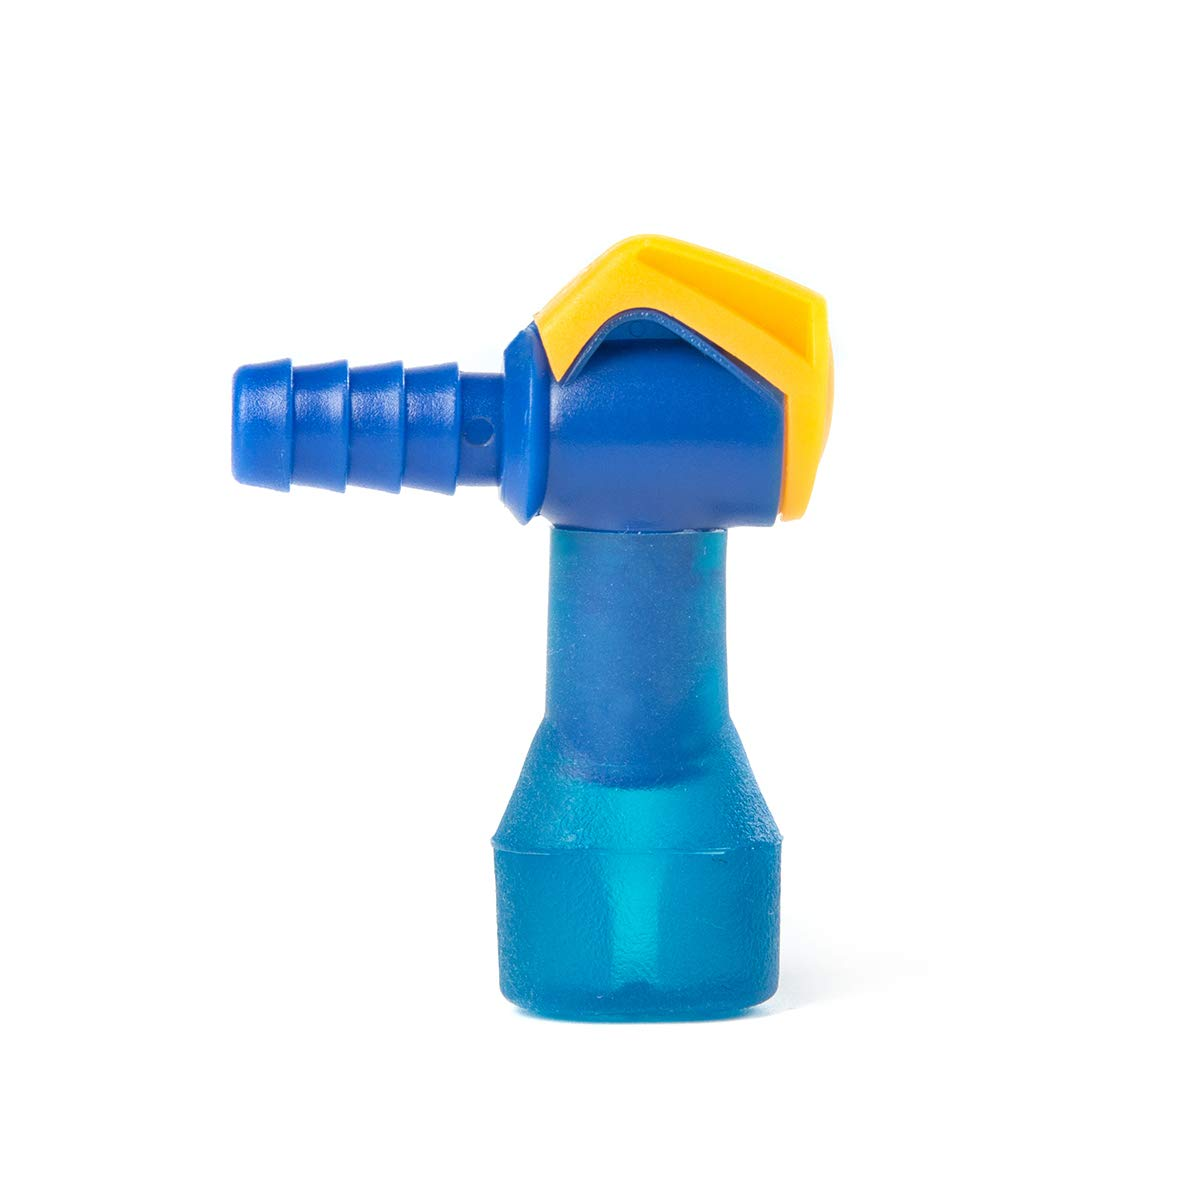 J.CARP ON-Off Switch Bite Valve Tube Nozzle Replacement for Hydration Pack Bladder, 90 Degree New Model